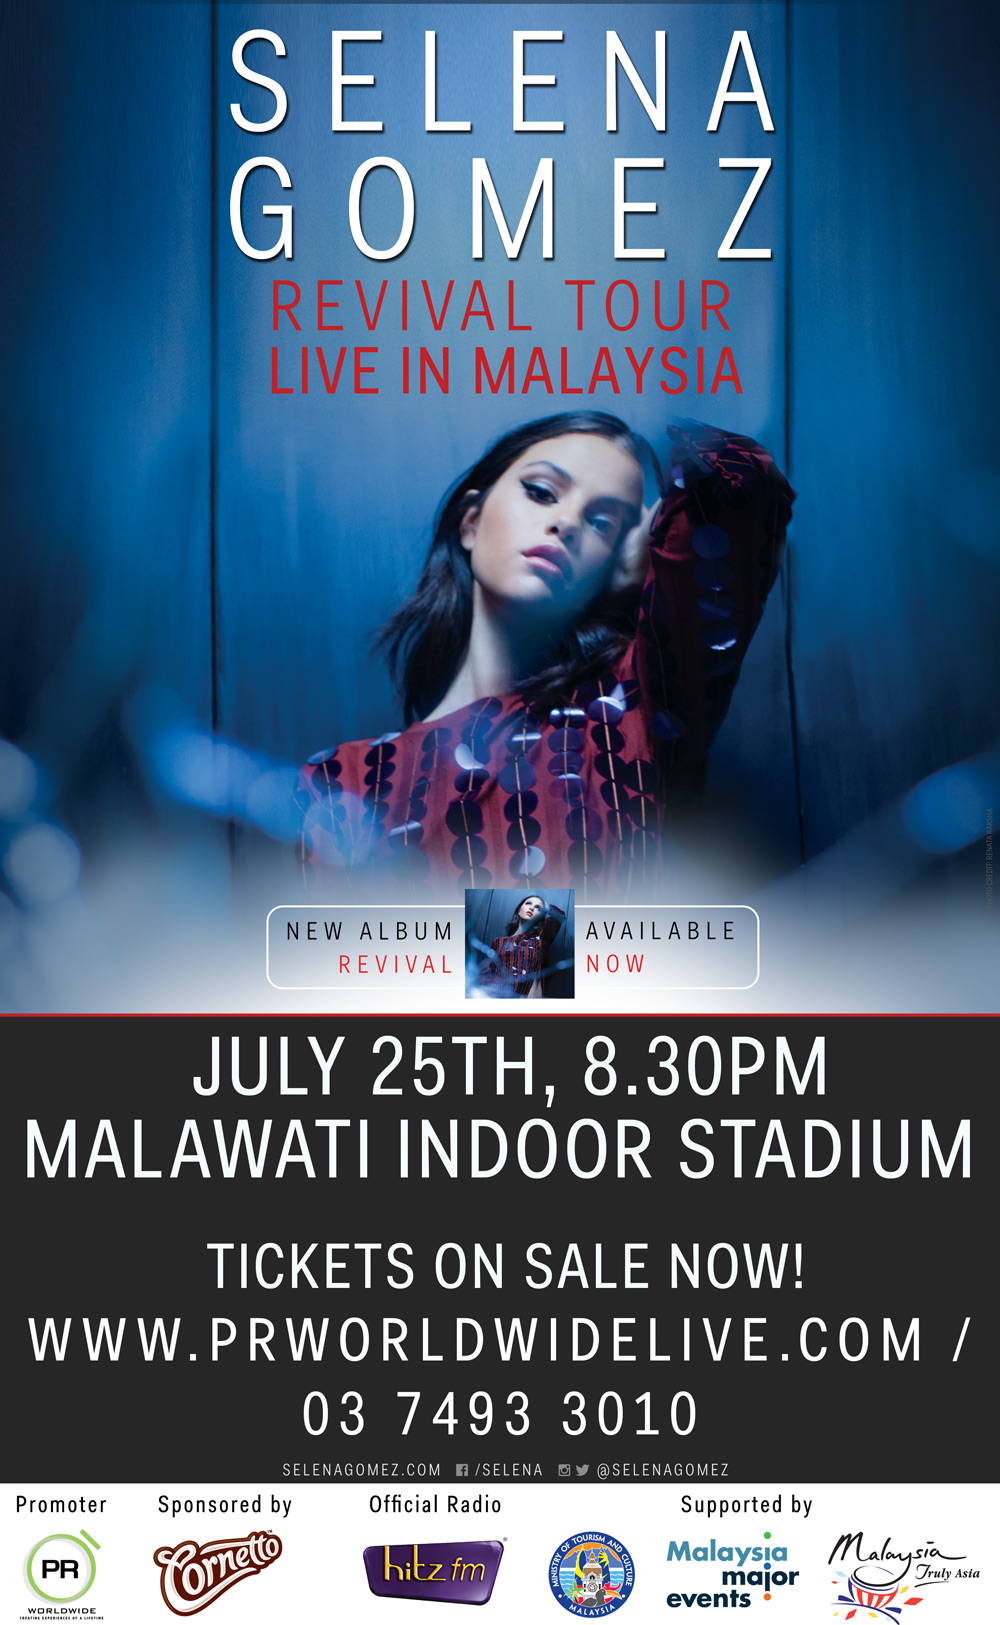 Selena gomez live in malaysia announcement pr worldwide events latestselenagomez concert information selena gomez m4hsunfo